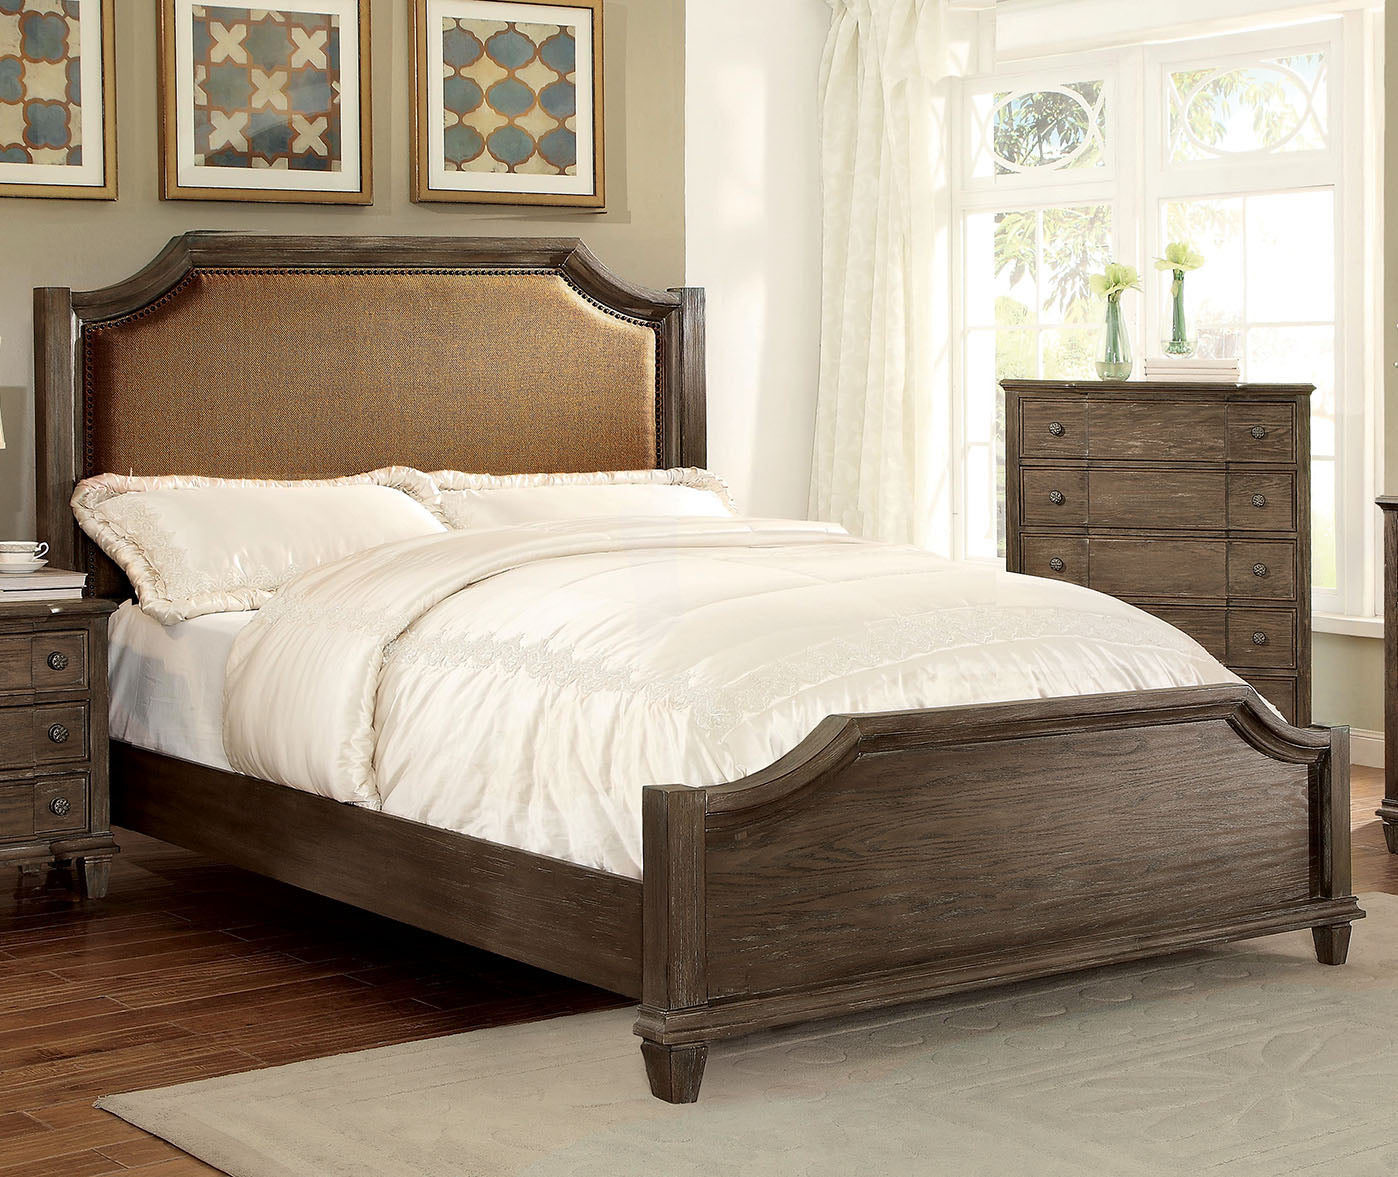 Halliday CM7281Q Transitional Wired-Brushed Gray Finish Queen Bed